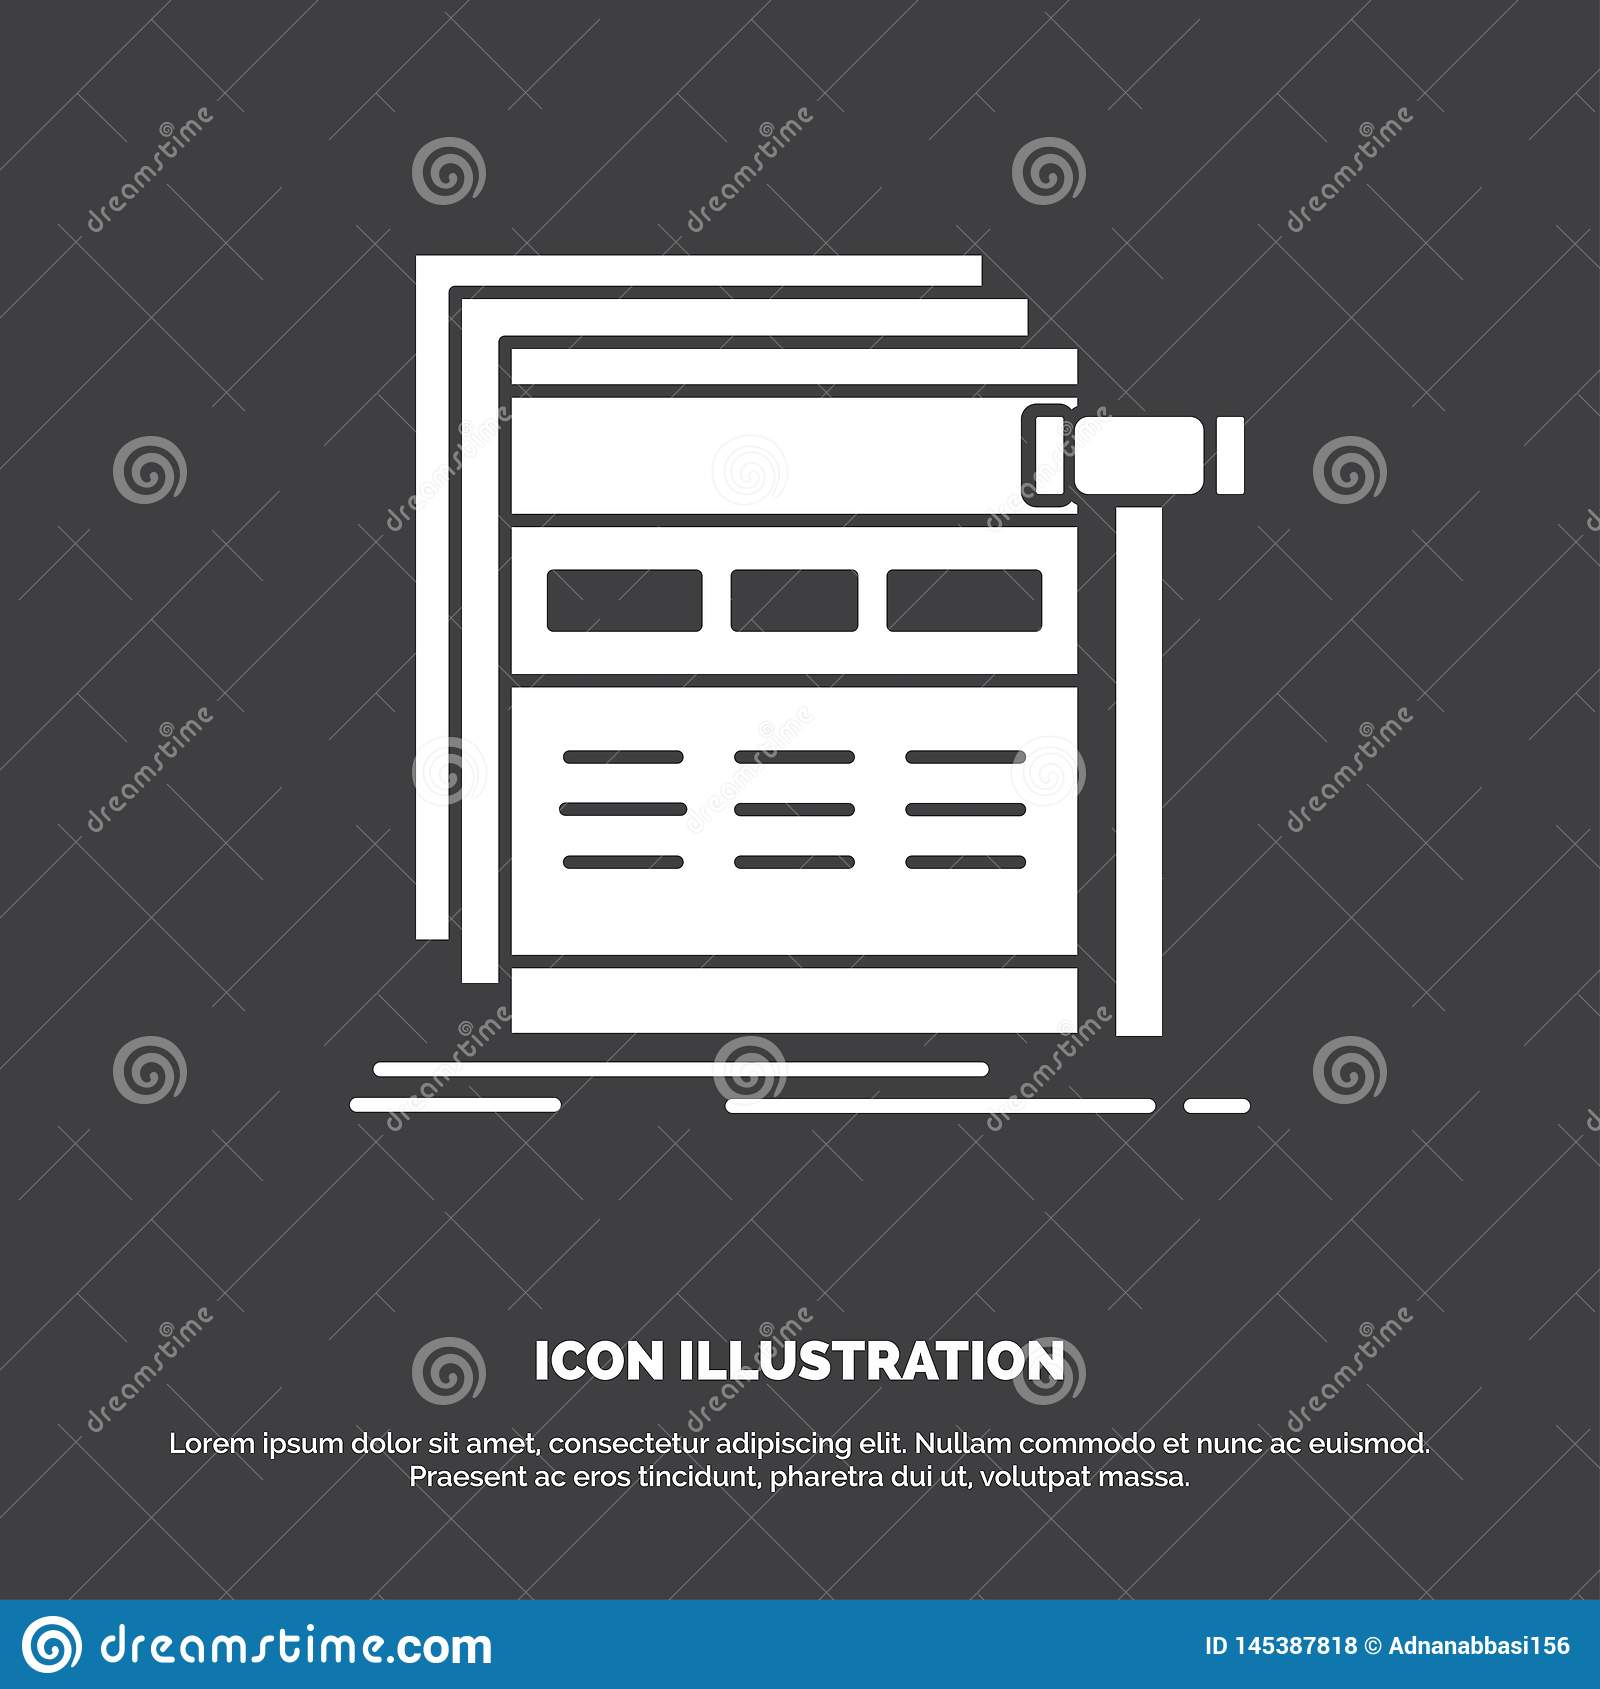 Internet, page, web, webpage, wireframe Icon. glyph vector symbol for UI and UX, website or mobile application